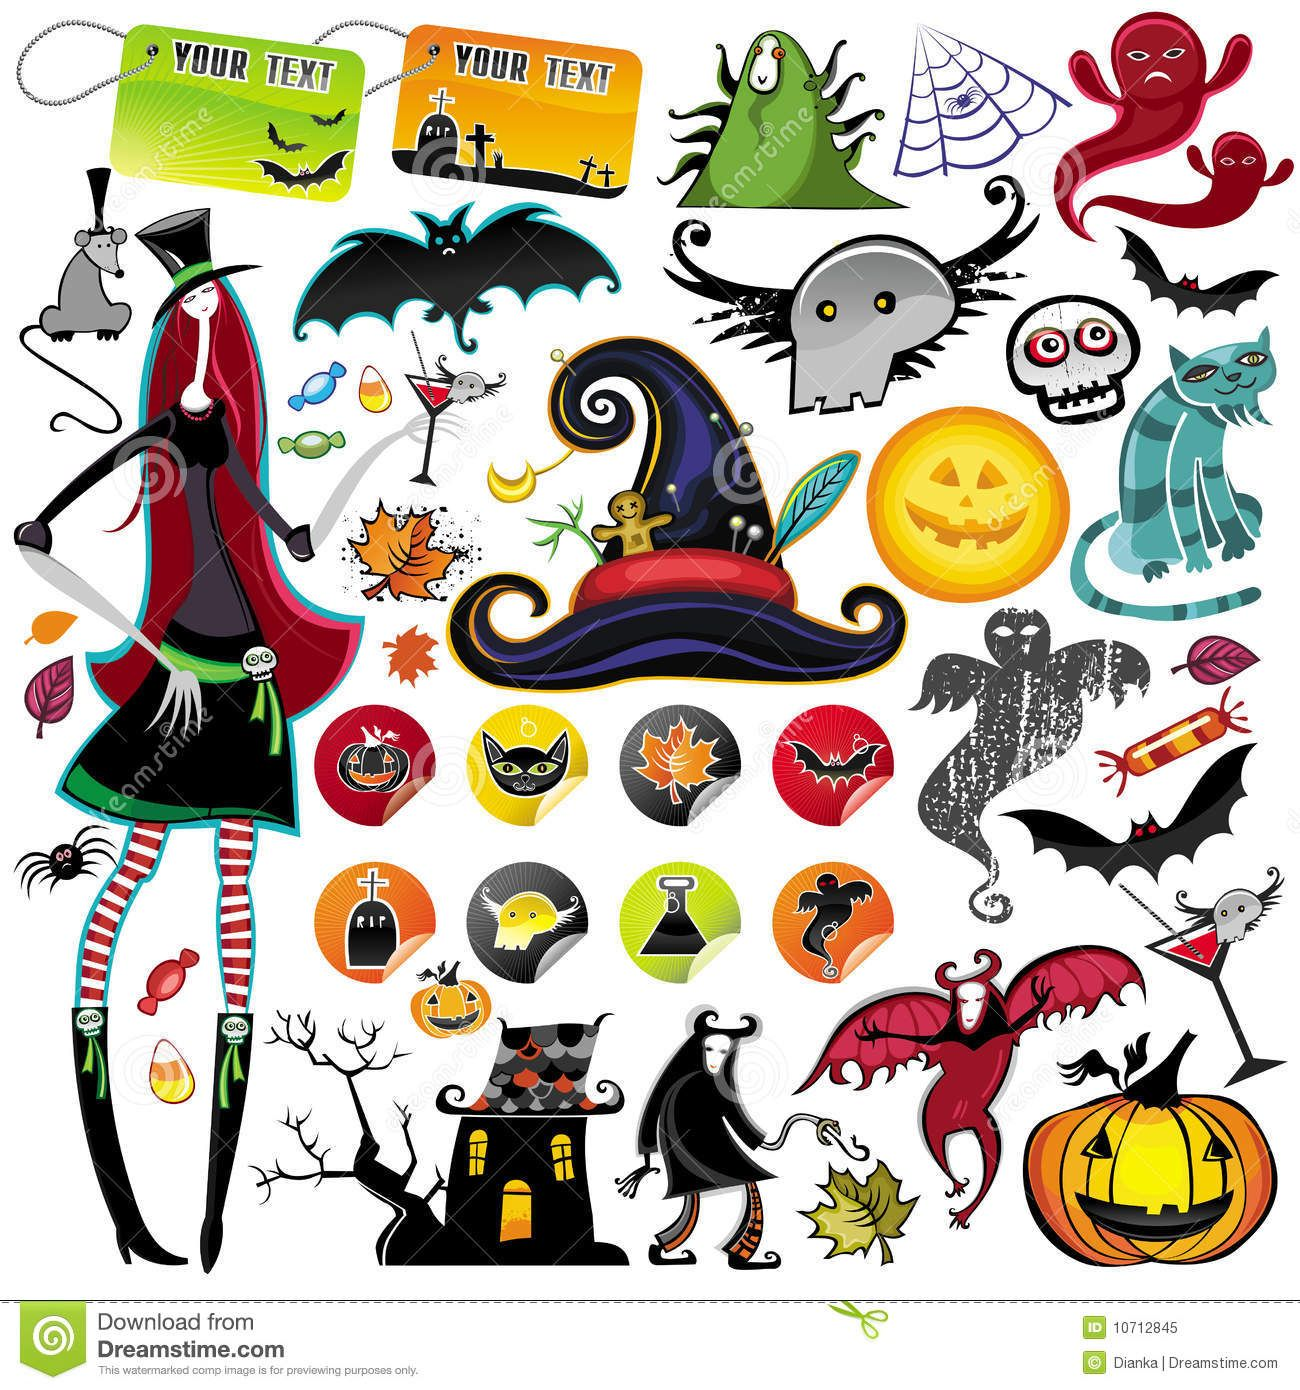 Halloween vector elements icon set, collection, with